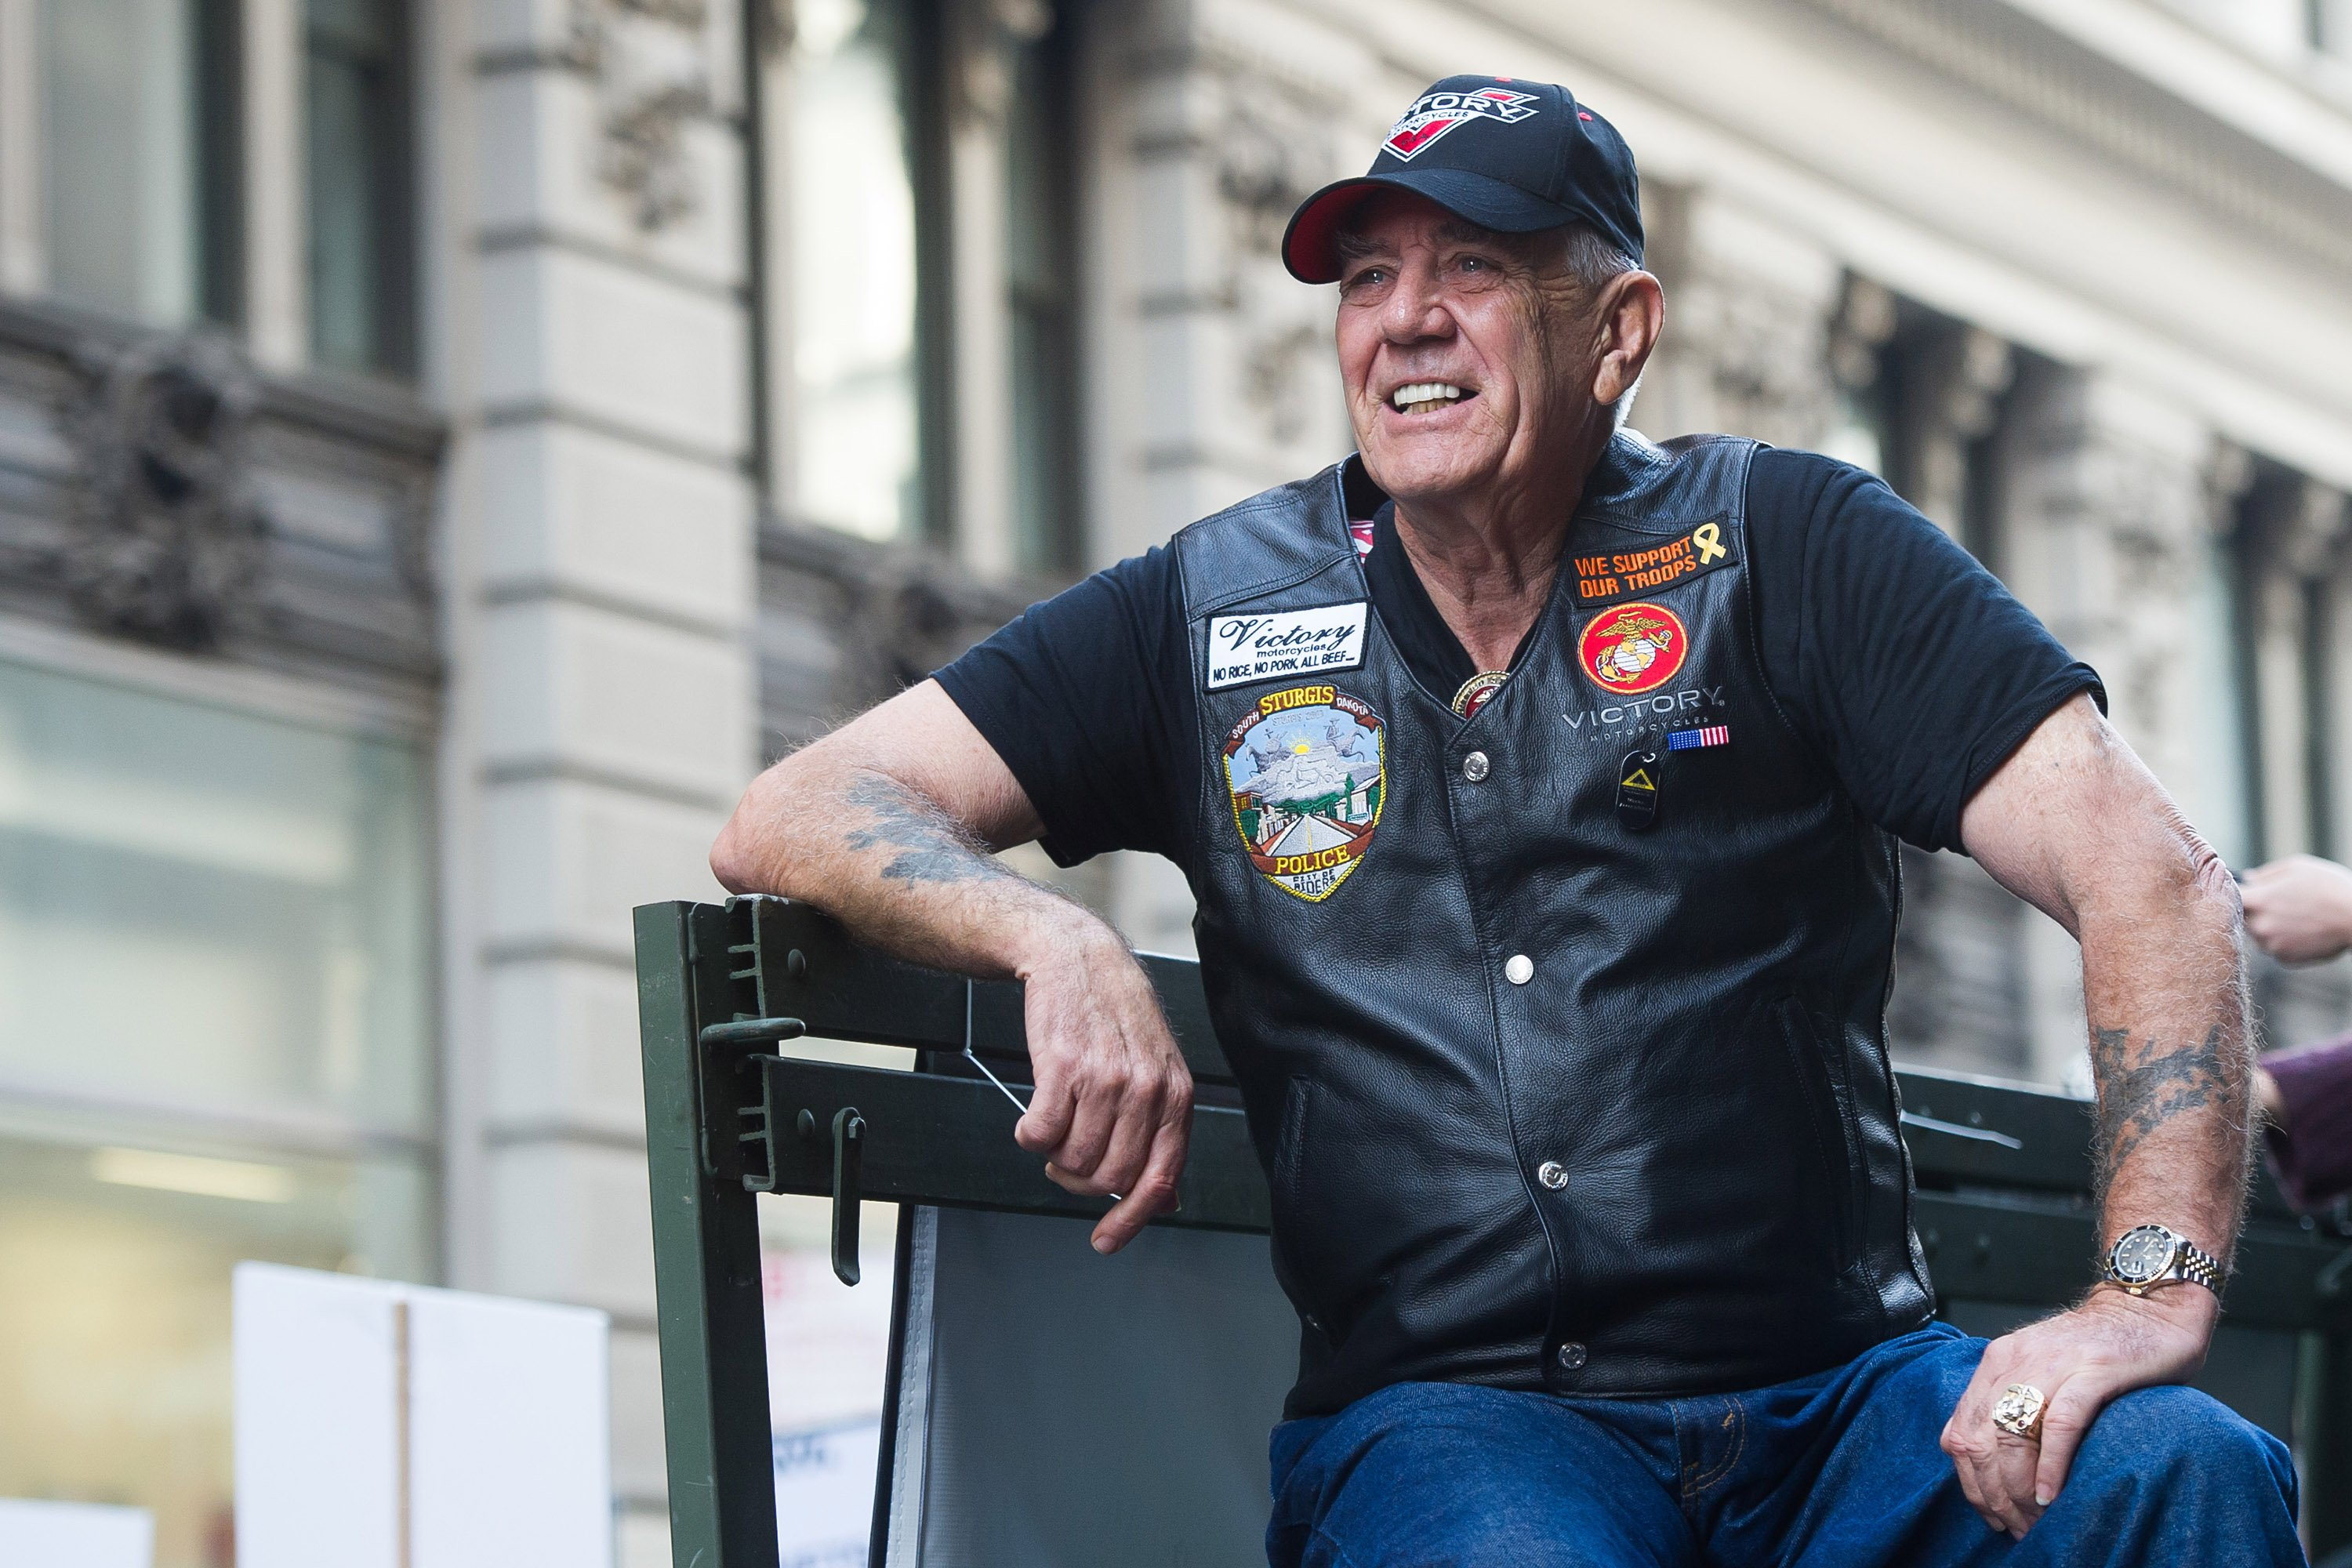 """(Charles Sykes/ AP Images for IAVA and Victory Motorcycles) Vietnam veteran and character actor R. Lee """"Gunny"""" Ermey joined 700 Veterans, 12 riding Victory Motorcycles and a 5-ton truck as part of the IAVA/Victory Motorcycles presence at America's Parade."""